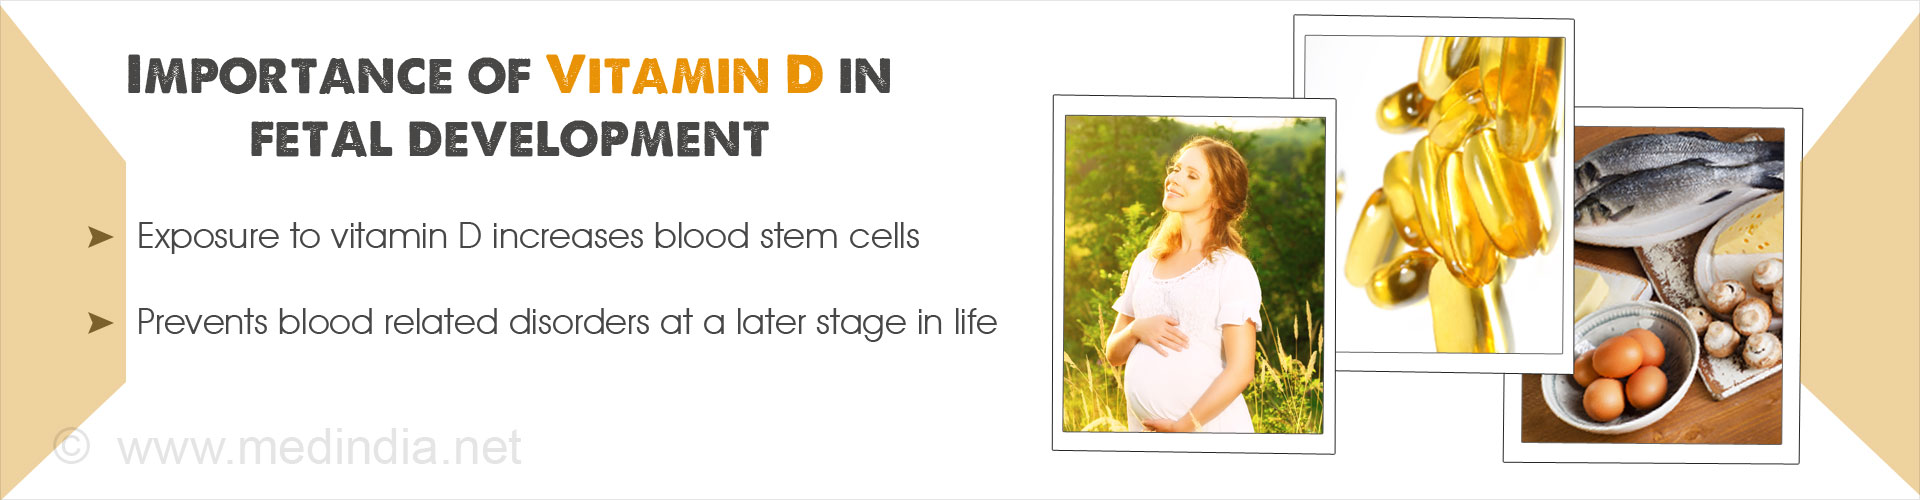 Vitamin D Found to Increase Blood Stem Cells During Development